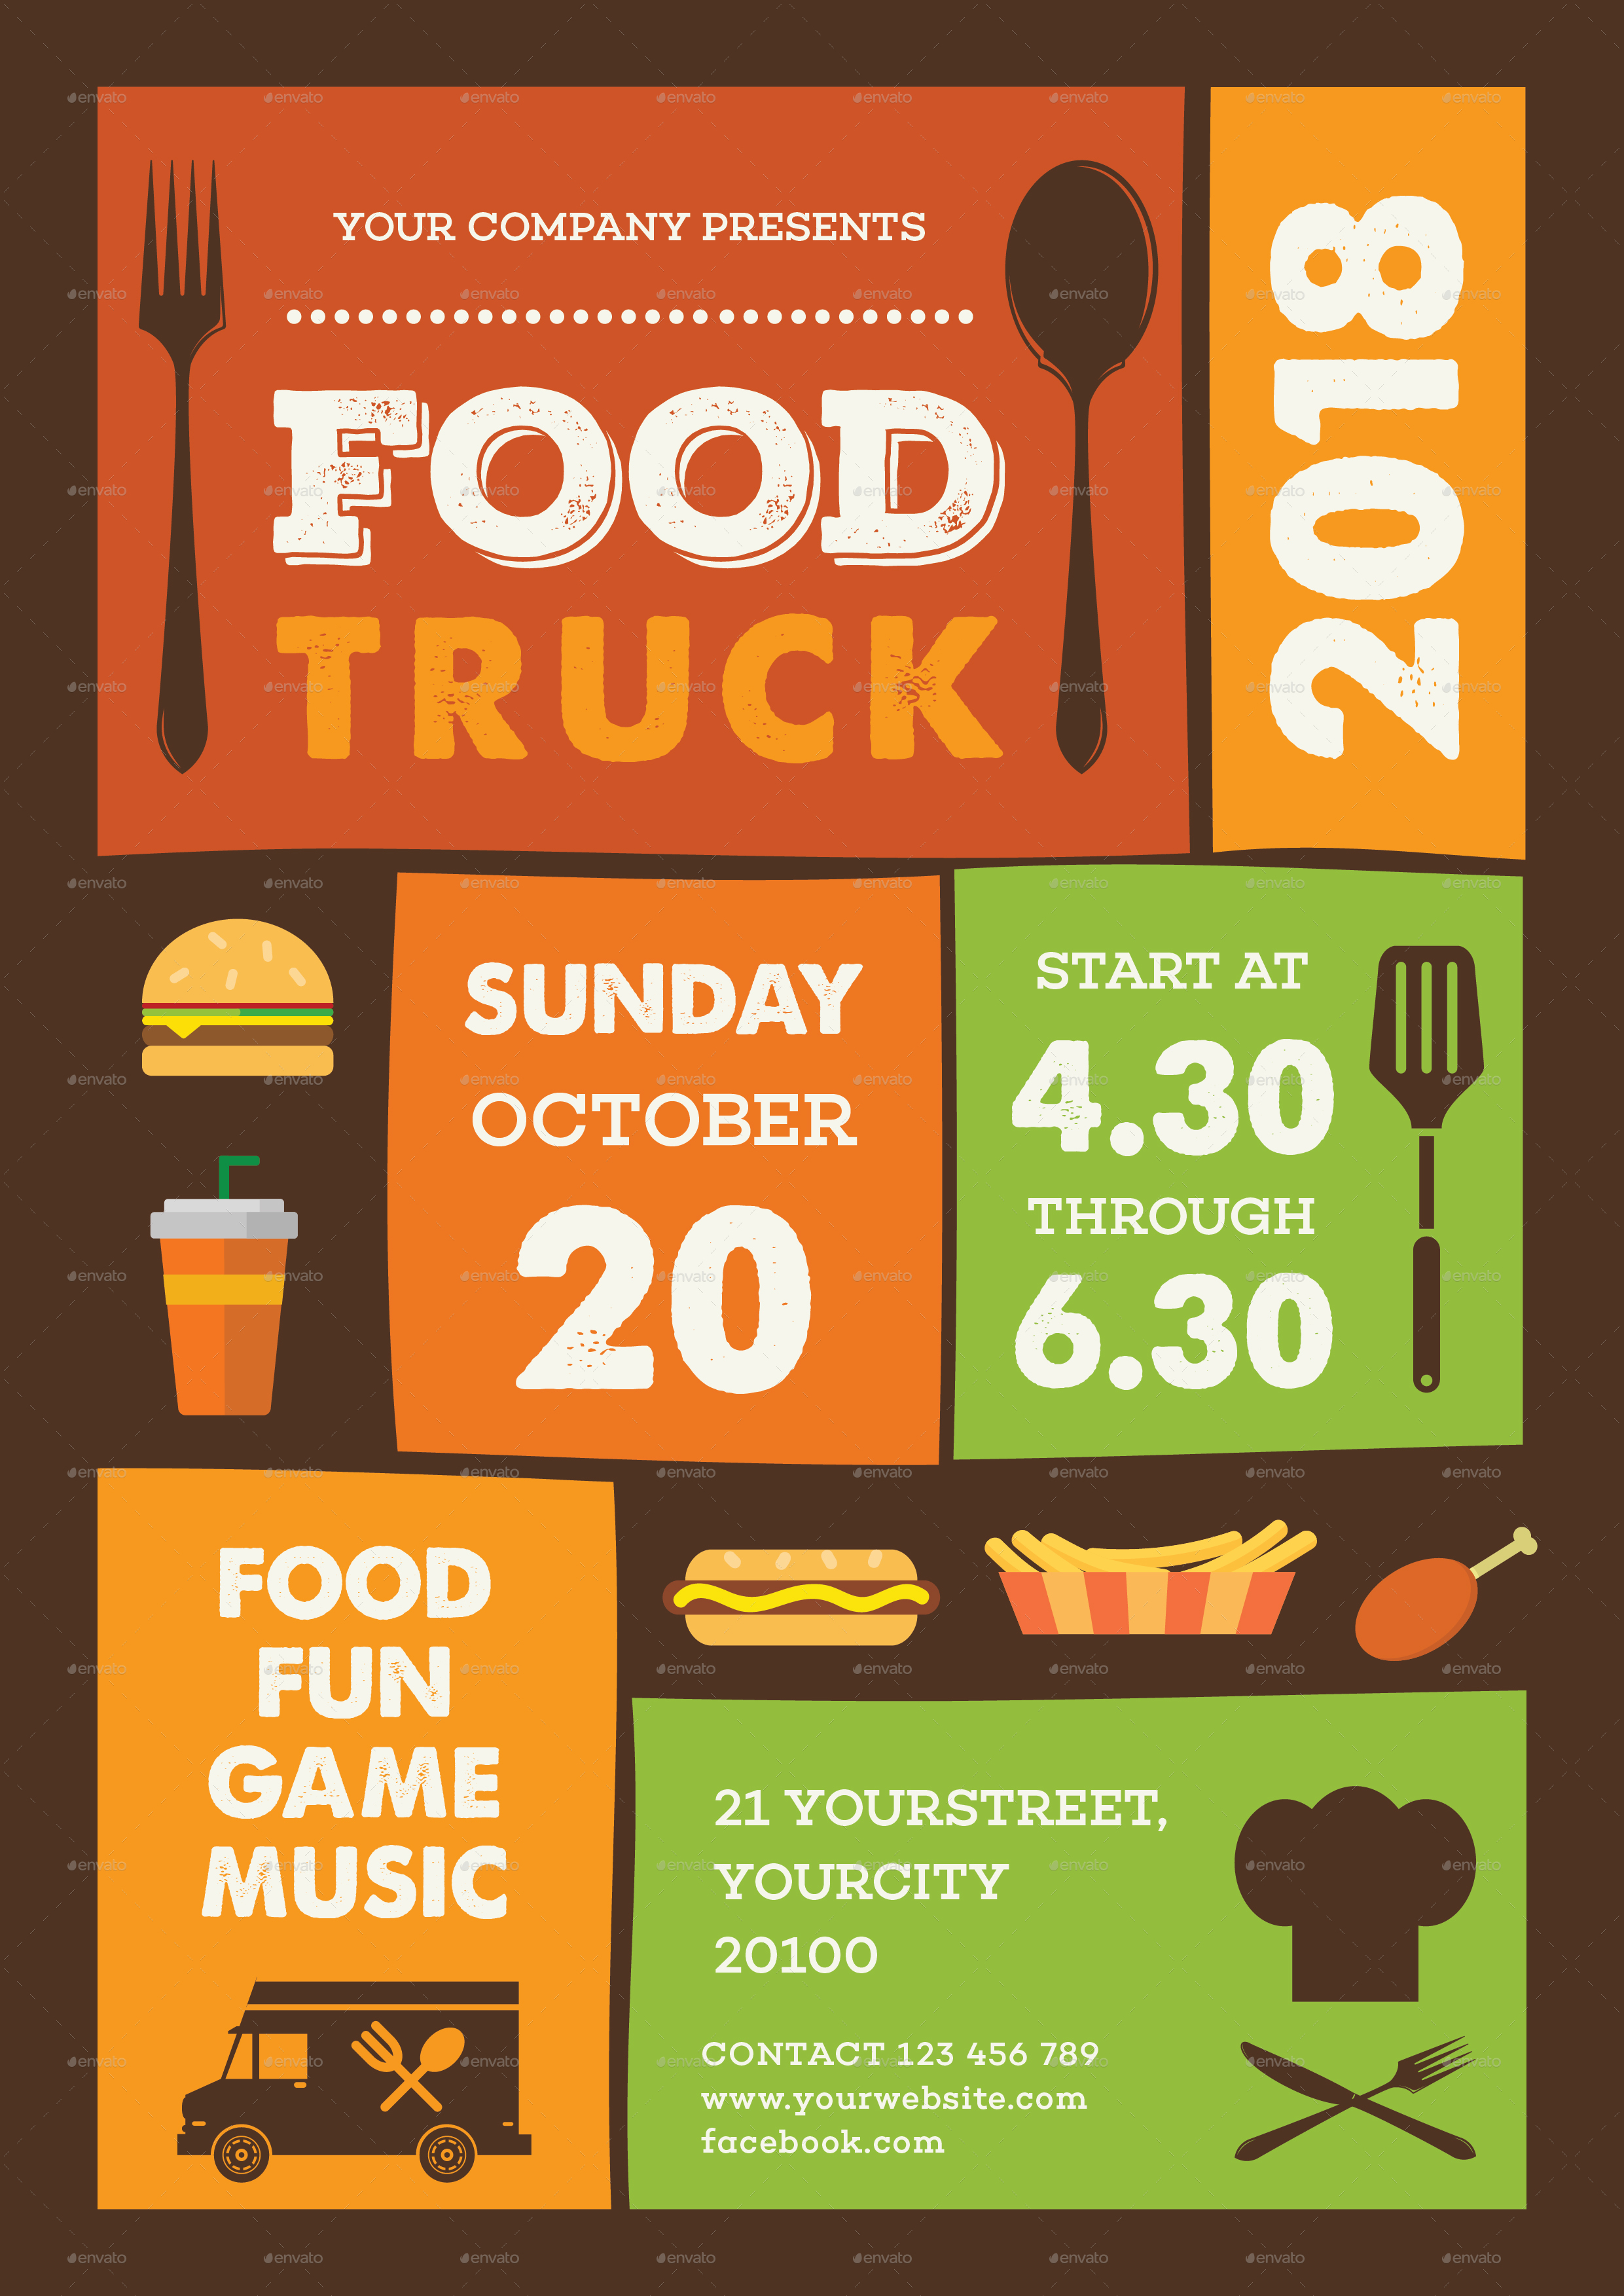 A Food Truck Flyers